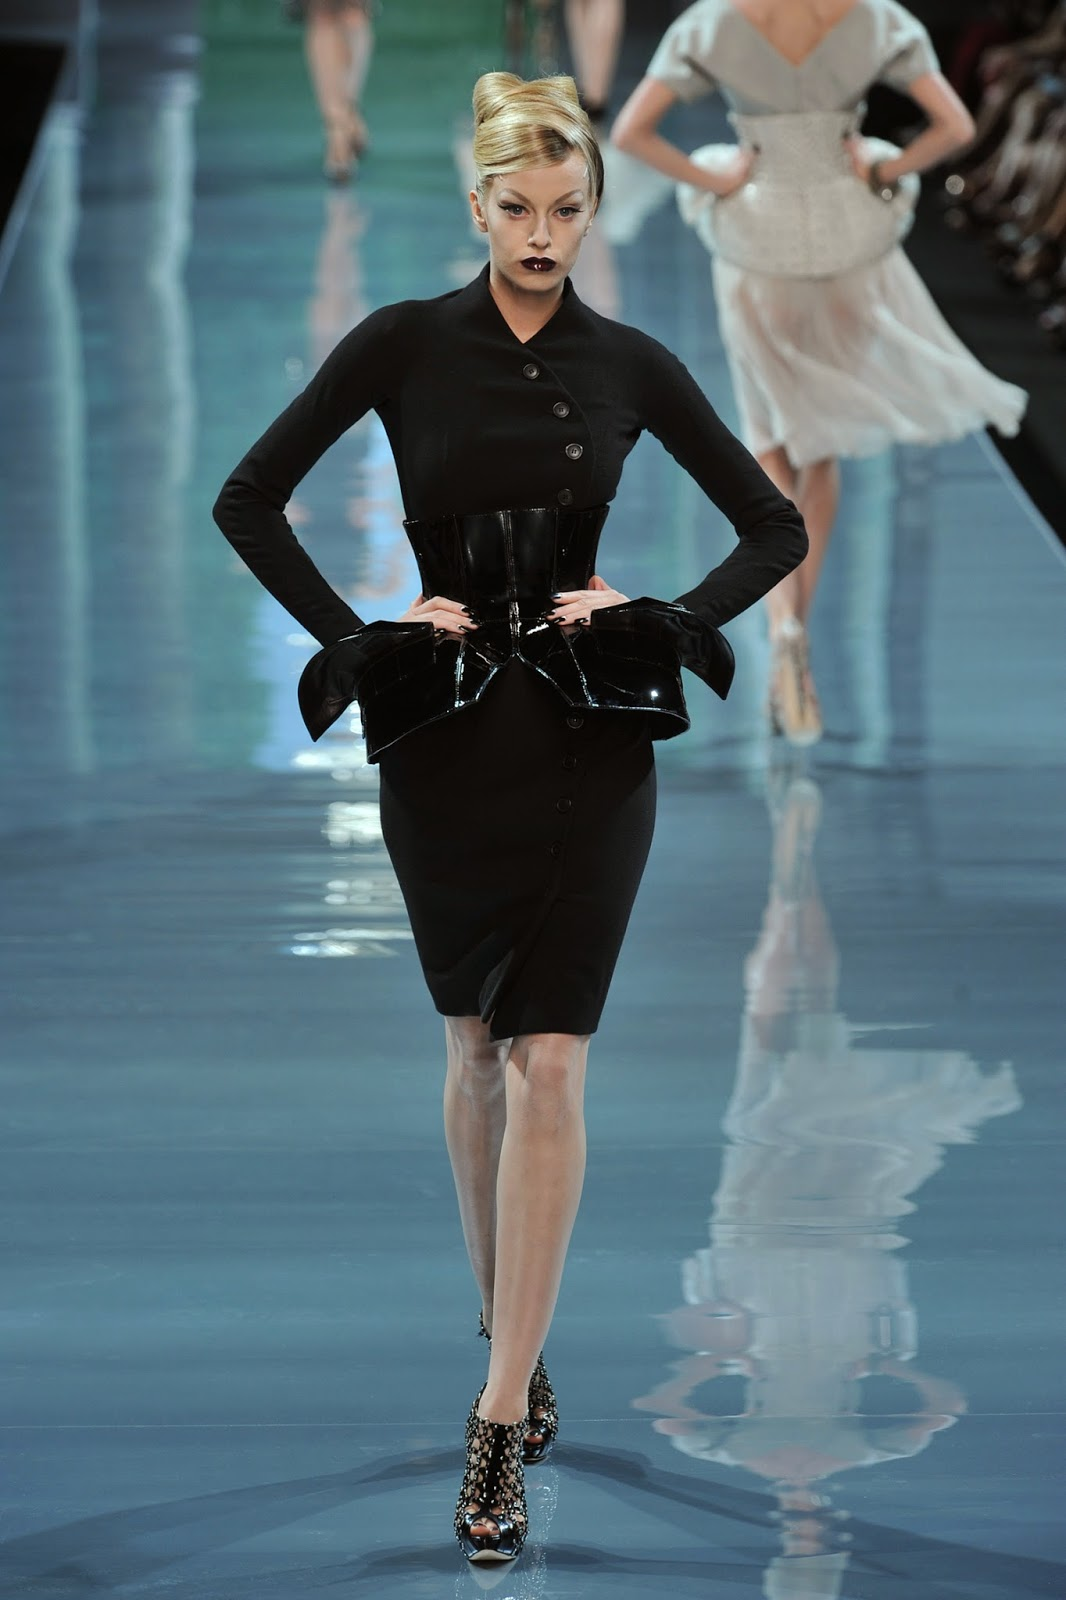 Fashion week Couture dior 08 couture new look for woman